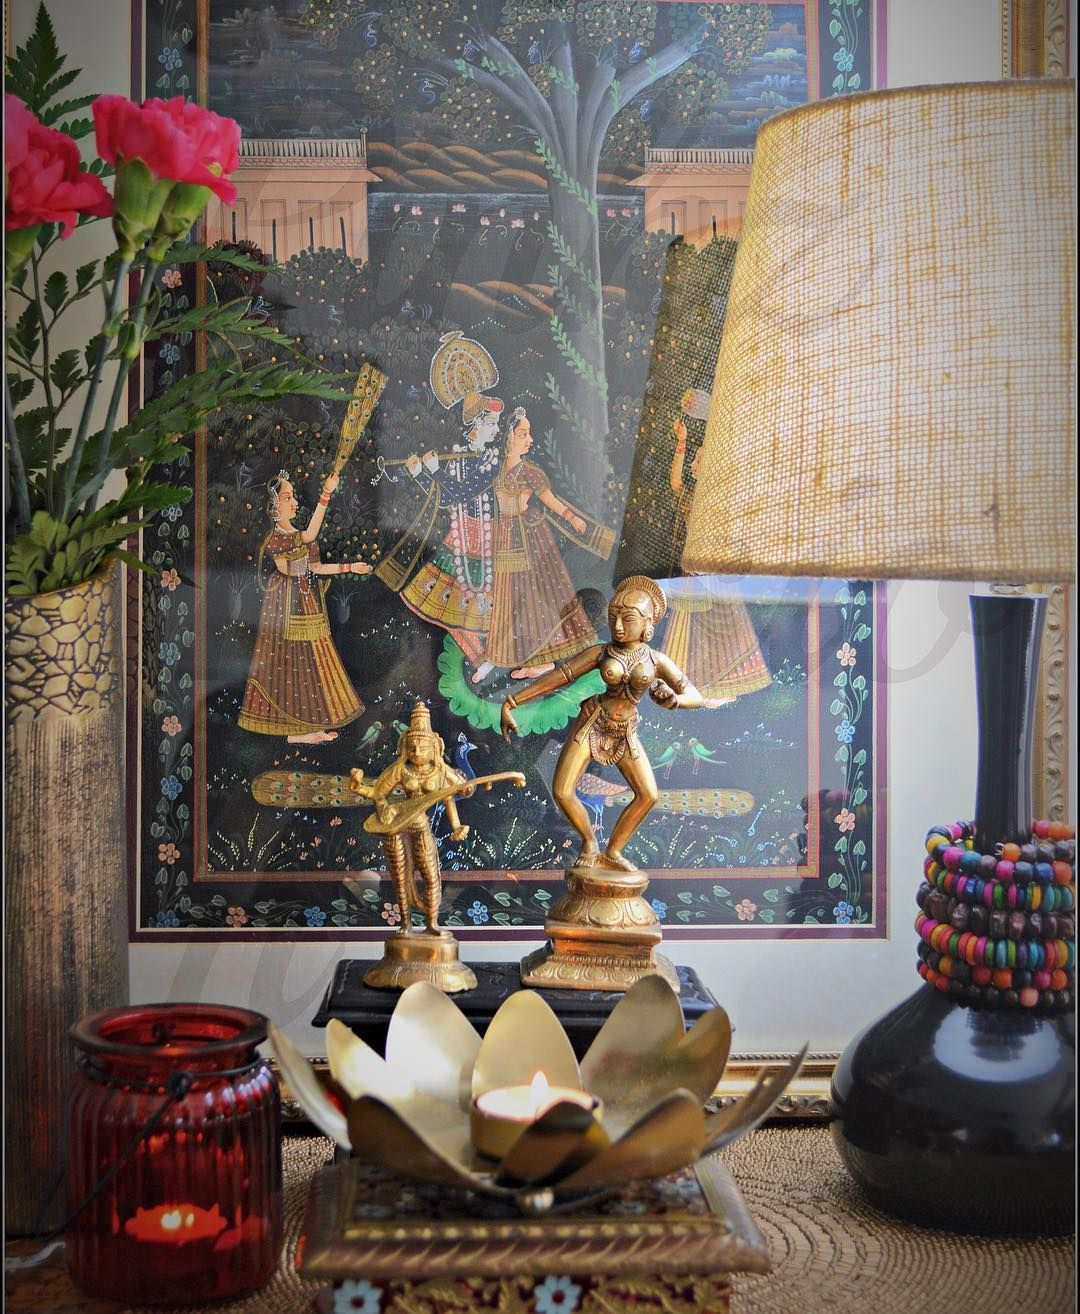 Home Decor Online Shopping India Interior Decoration: Indian Décor, Indian Inspired Décor, Brass Collectibles